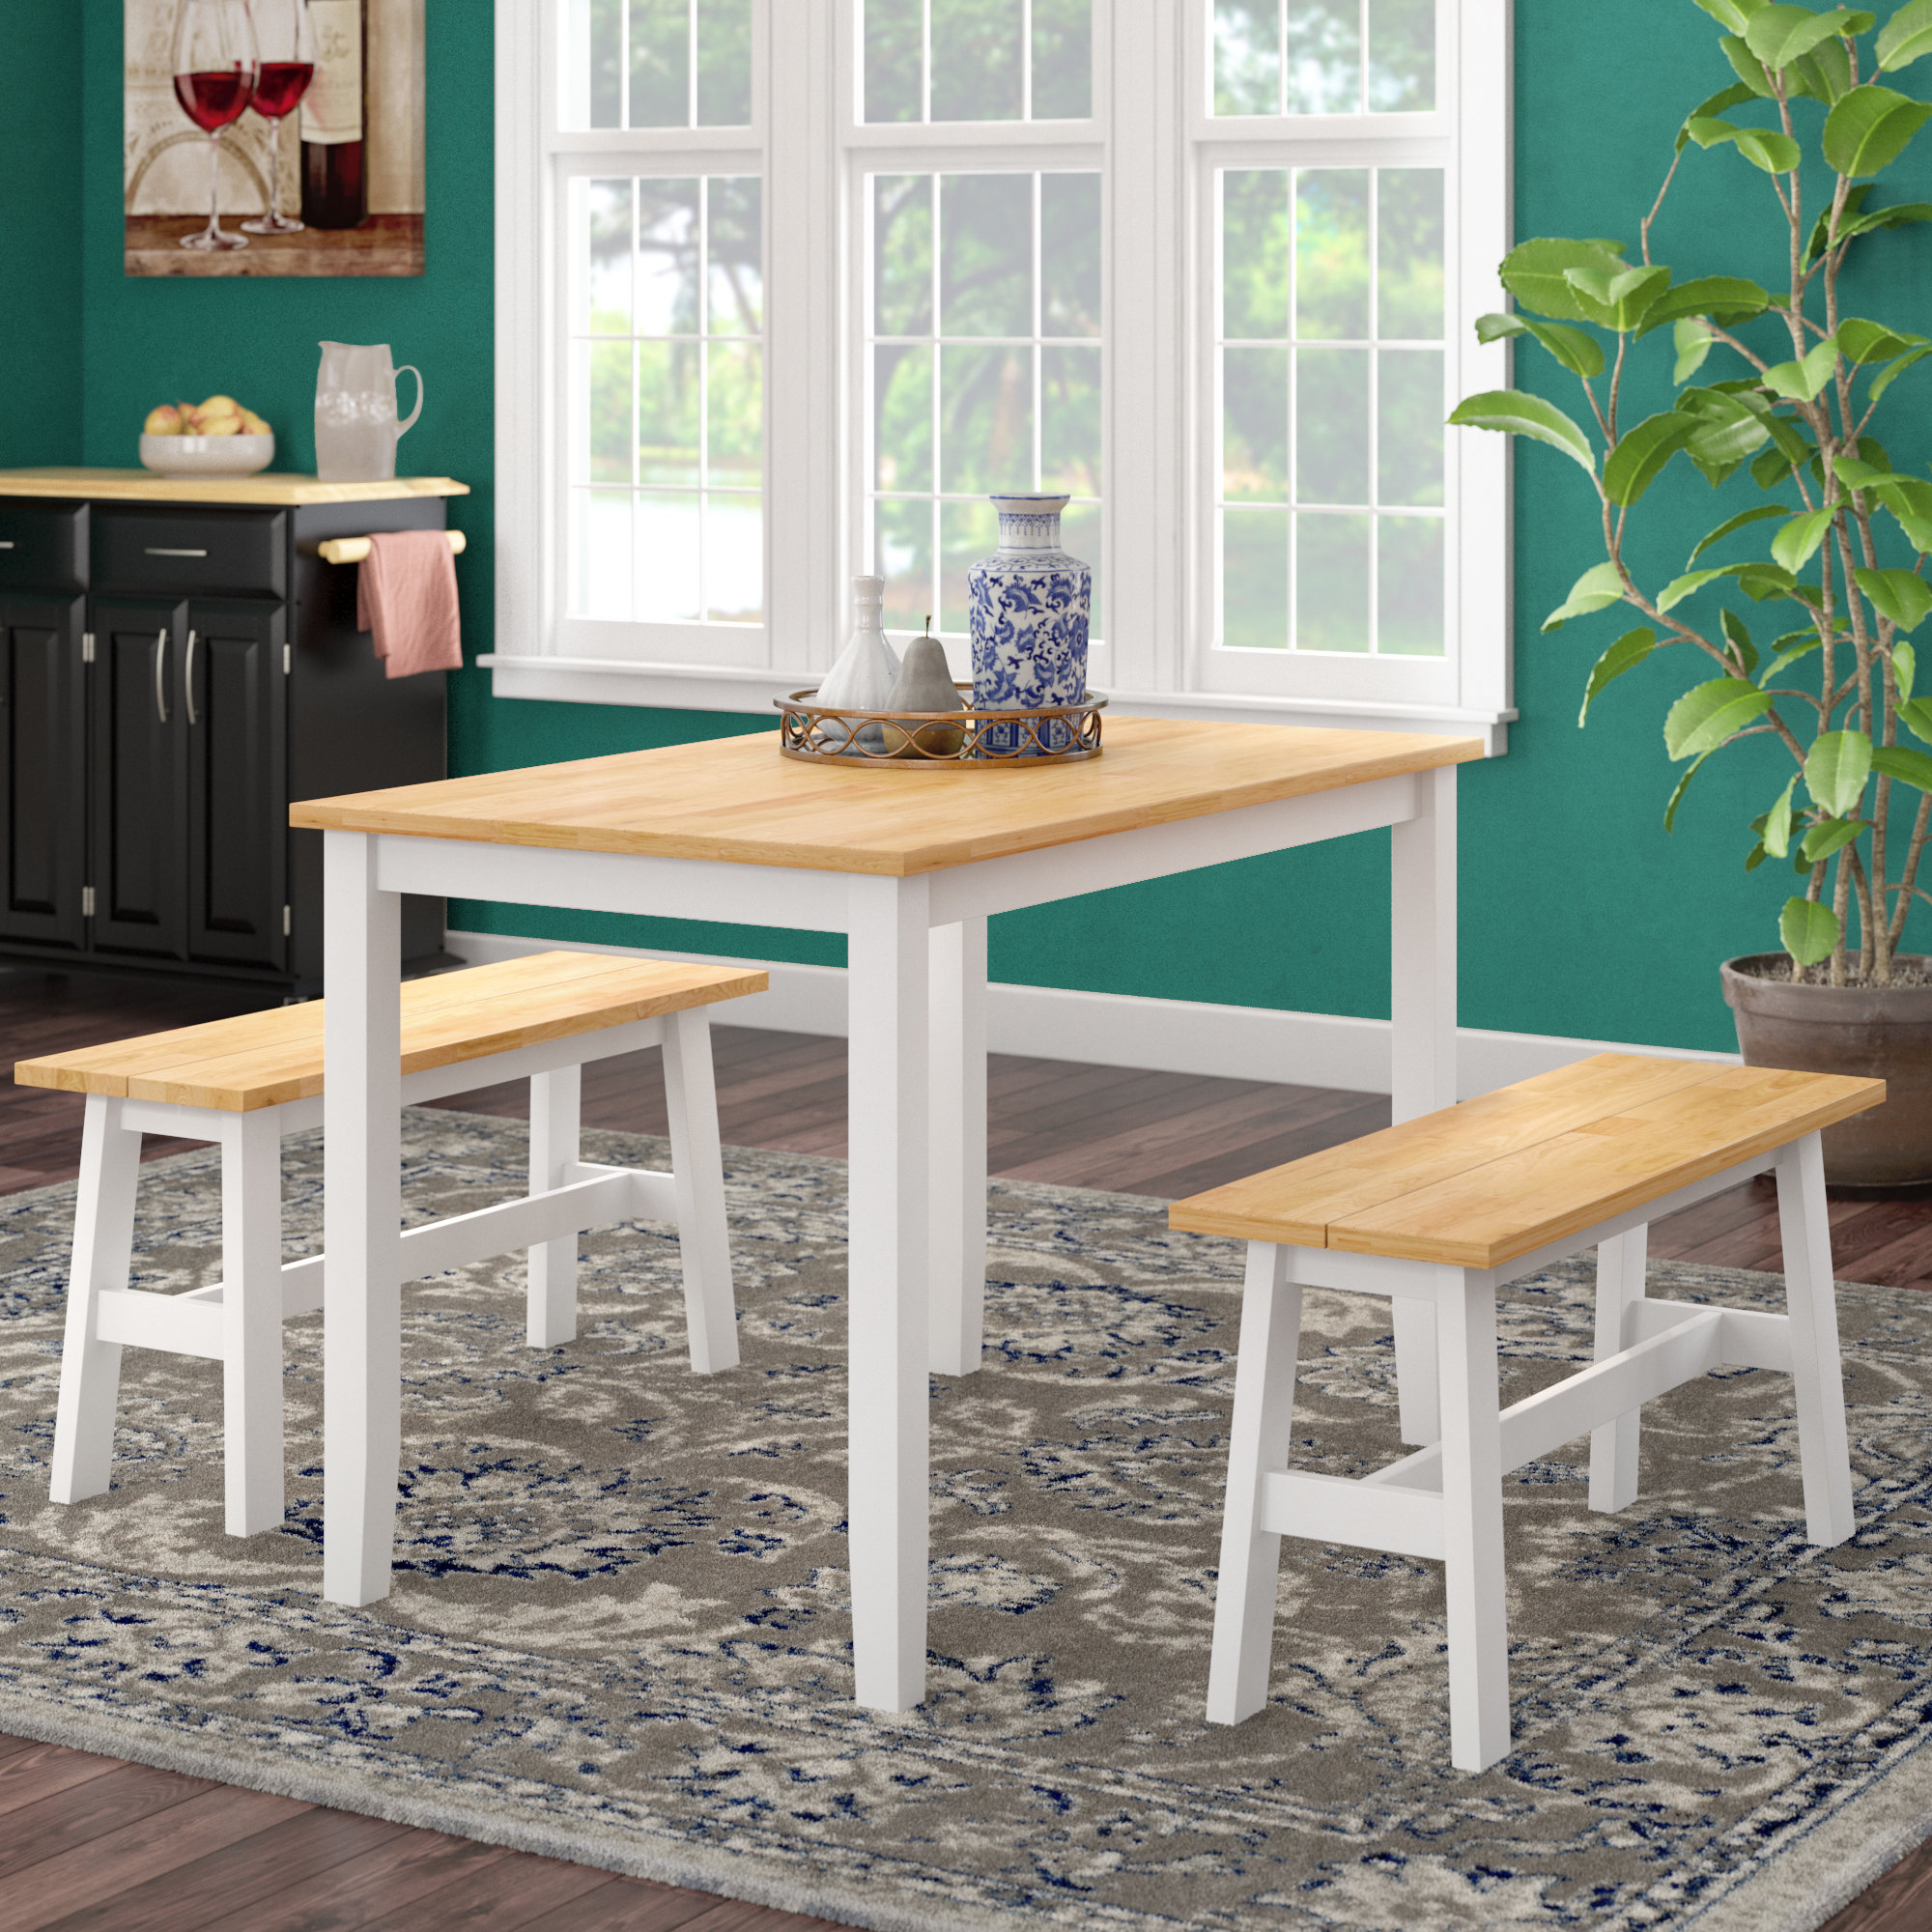 Kaya 3 Piece Dining Set Throughout Most Recently Released Kaya 3 Piece Dining Sets (Gallery 1 of 20)